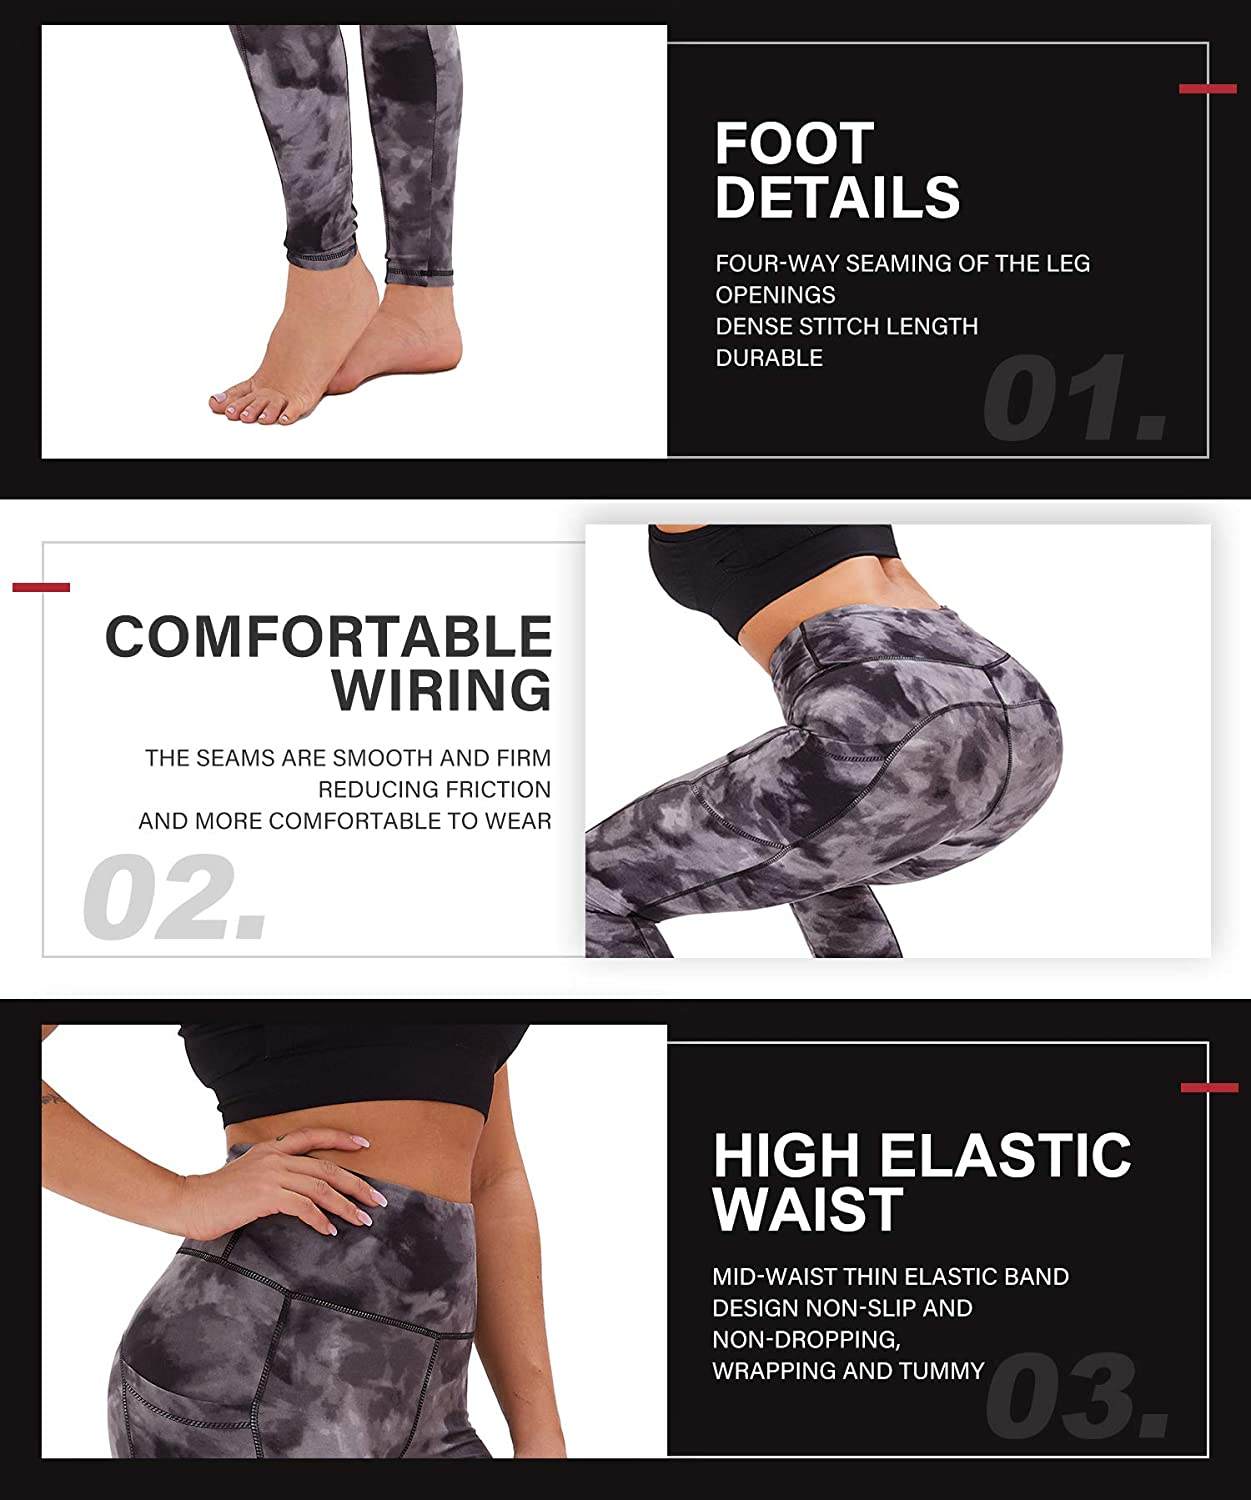 CAMPSNAIL Yoga Leggings with Pockets for Women High Waisted Tummy Control Strectchy Soft Pants for Workout Running